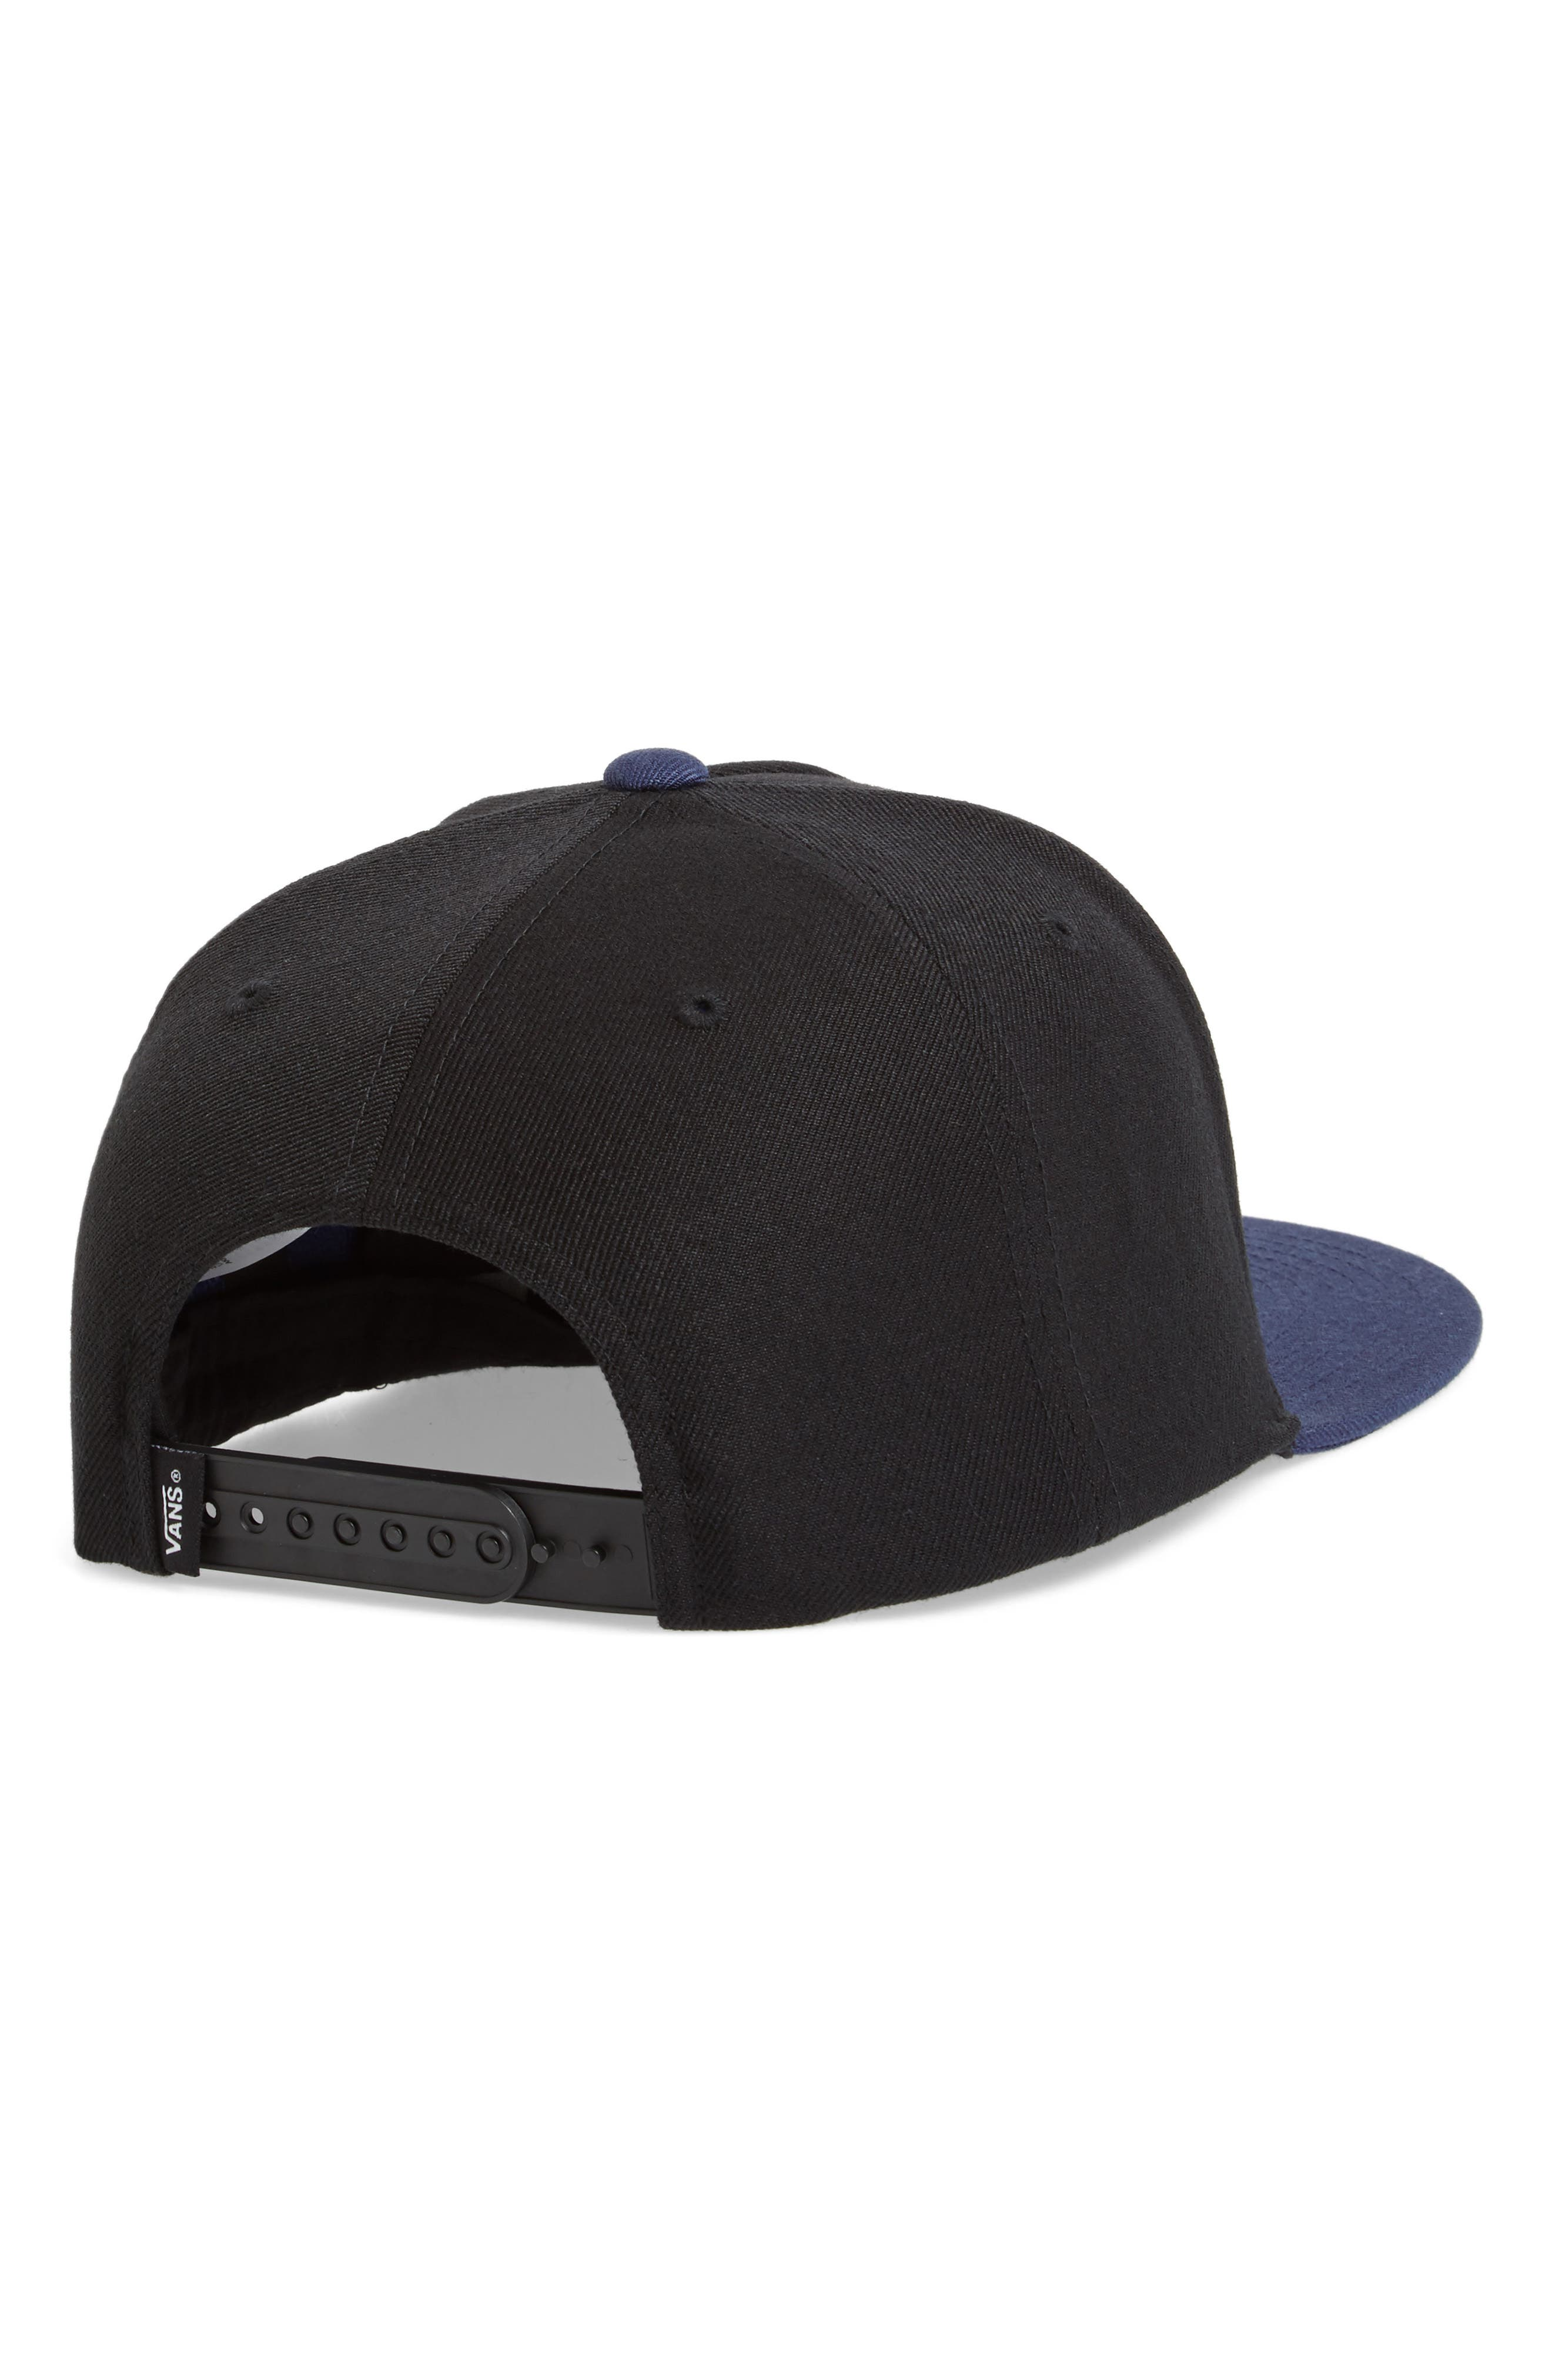 Mini Patch II Snapback Cap,                             Alternate thumbnail 2, color,                             Black/ Dress Blues